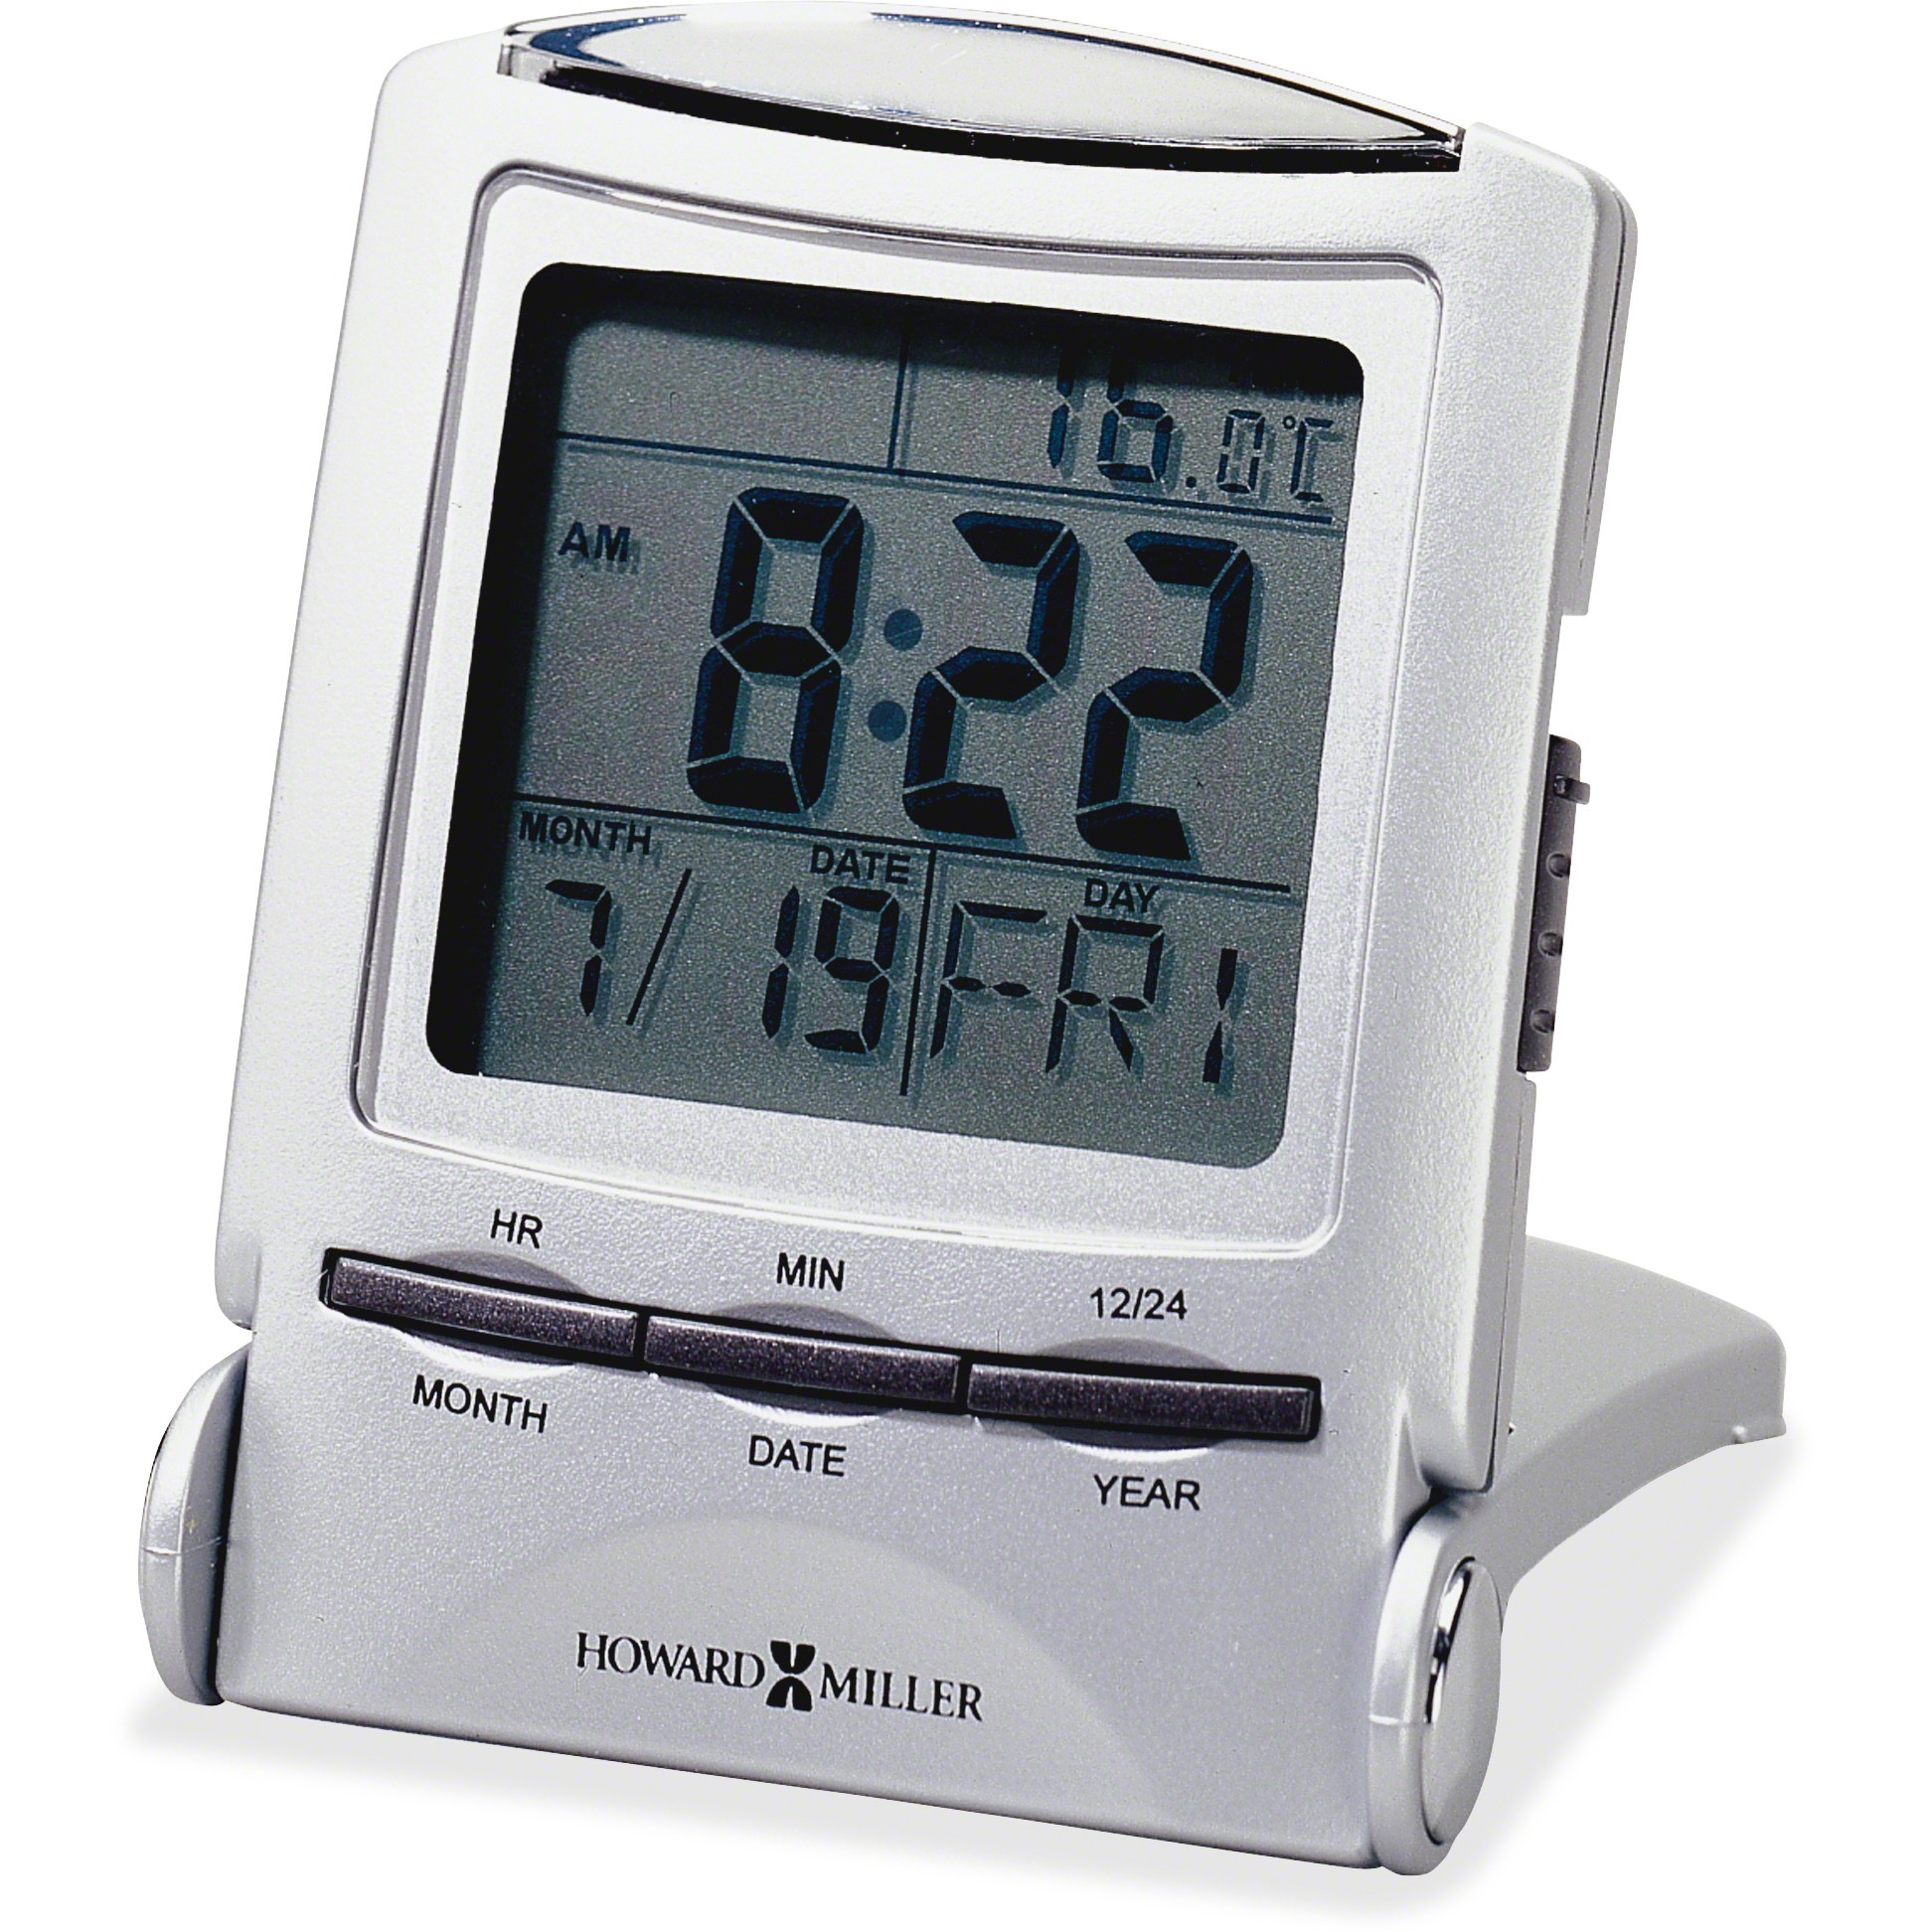 Howard Miller, MIL645358, Travel alarm Clock, 1